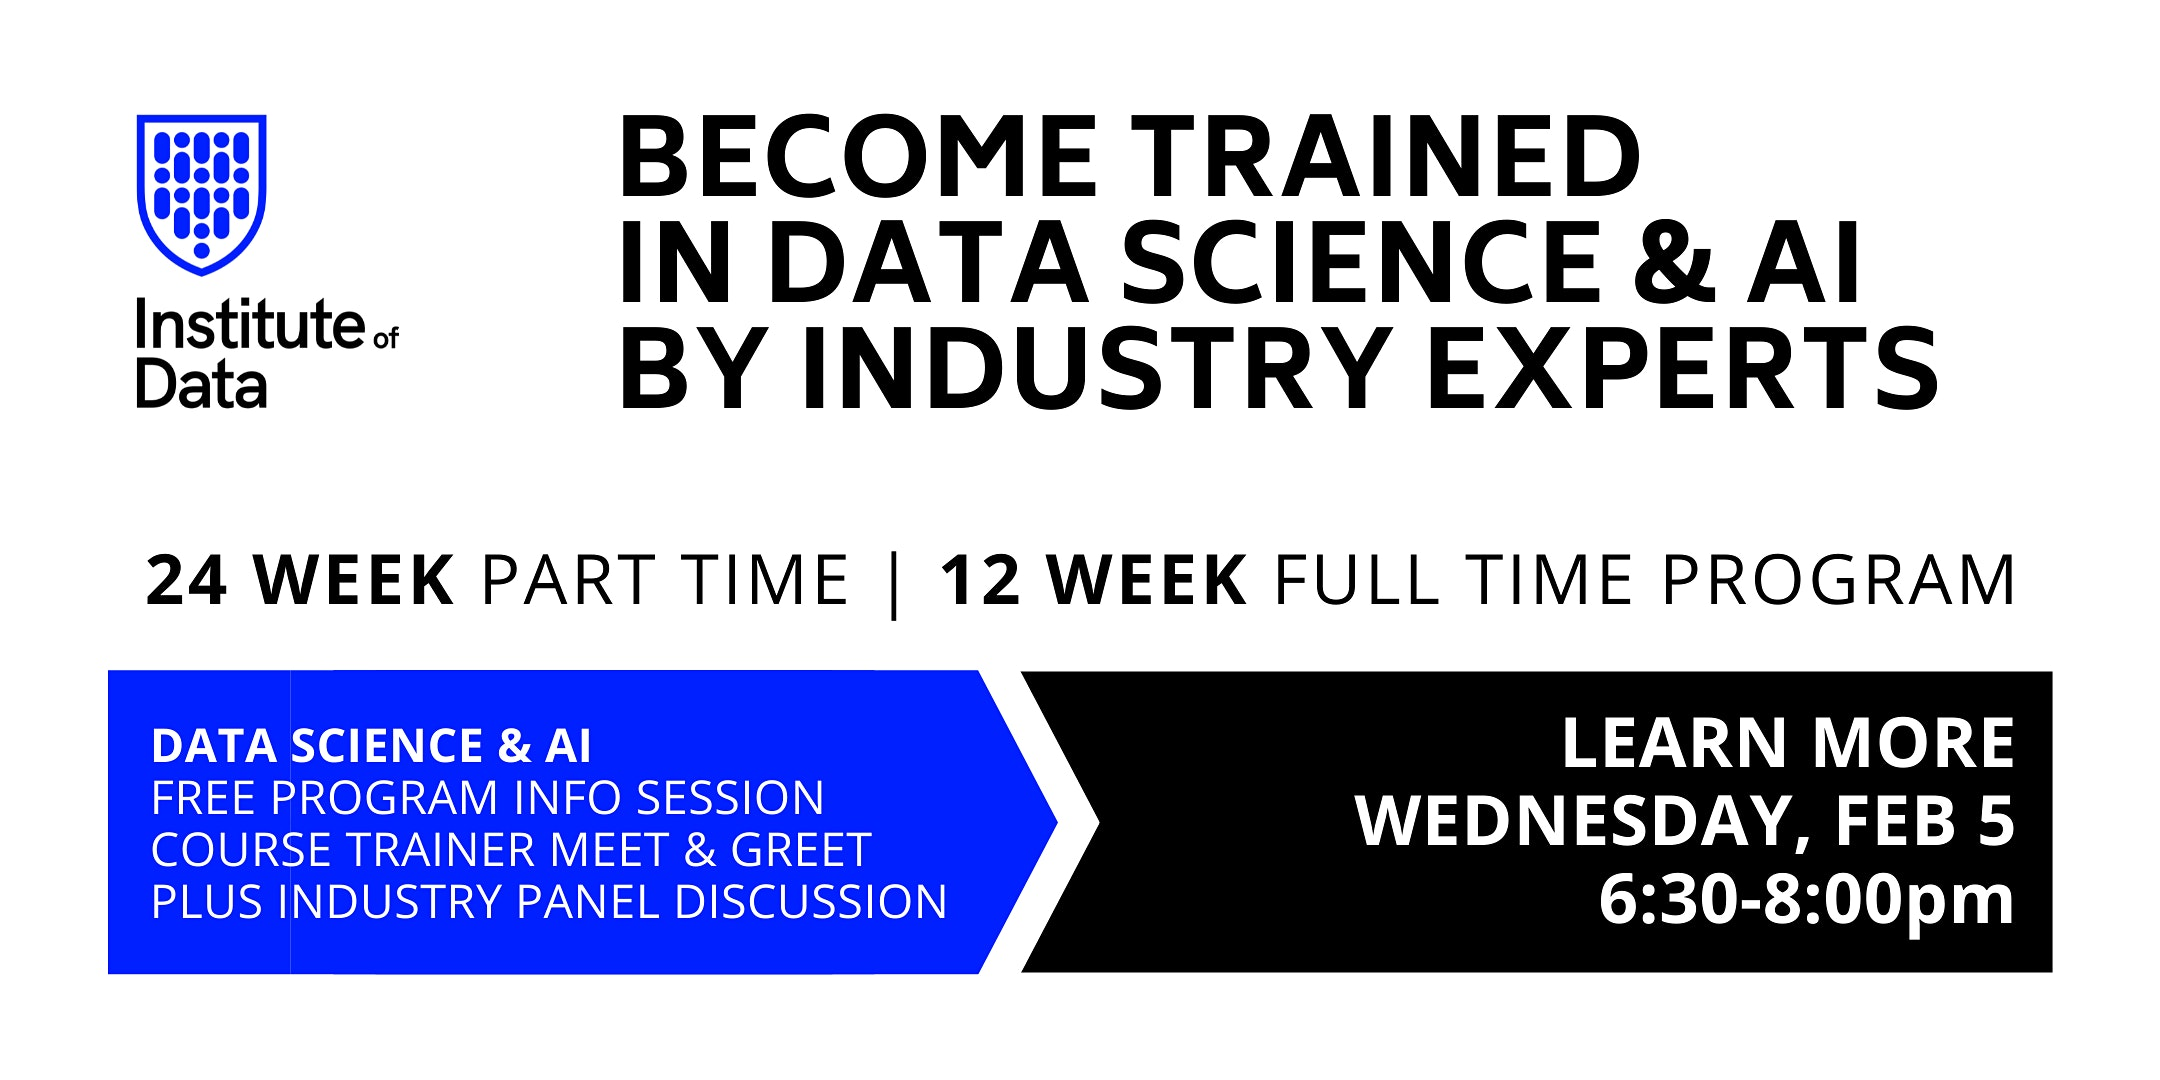 Become Trained in Data Science & AI by Industry Experts